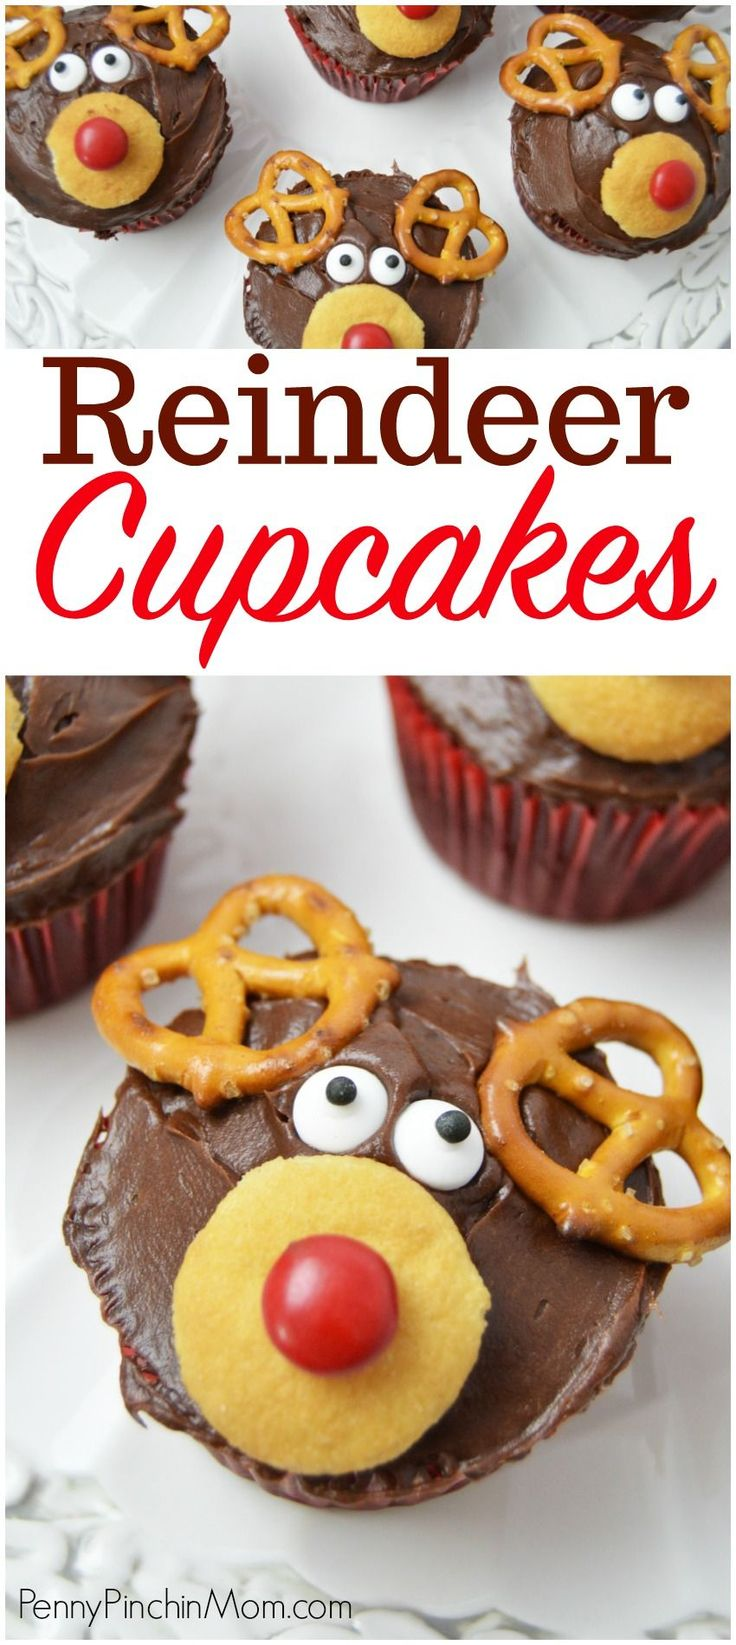 Reindeer Cupcakes for your Christmas party Reindeer food | Christmas recipes | Easy Holiday Baking ideas | Kid Ideas for Christmas #Christmas #cupcakes